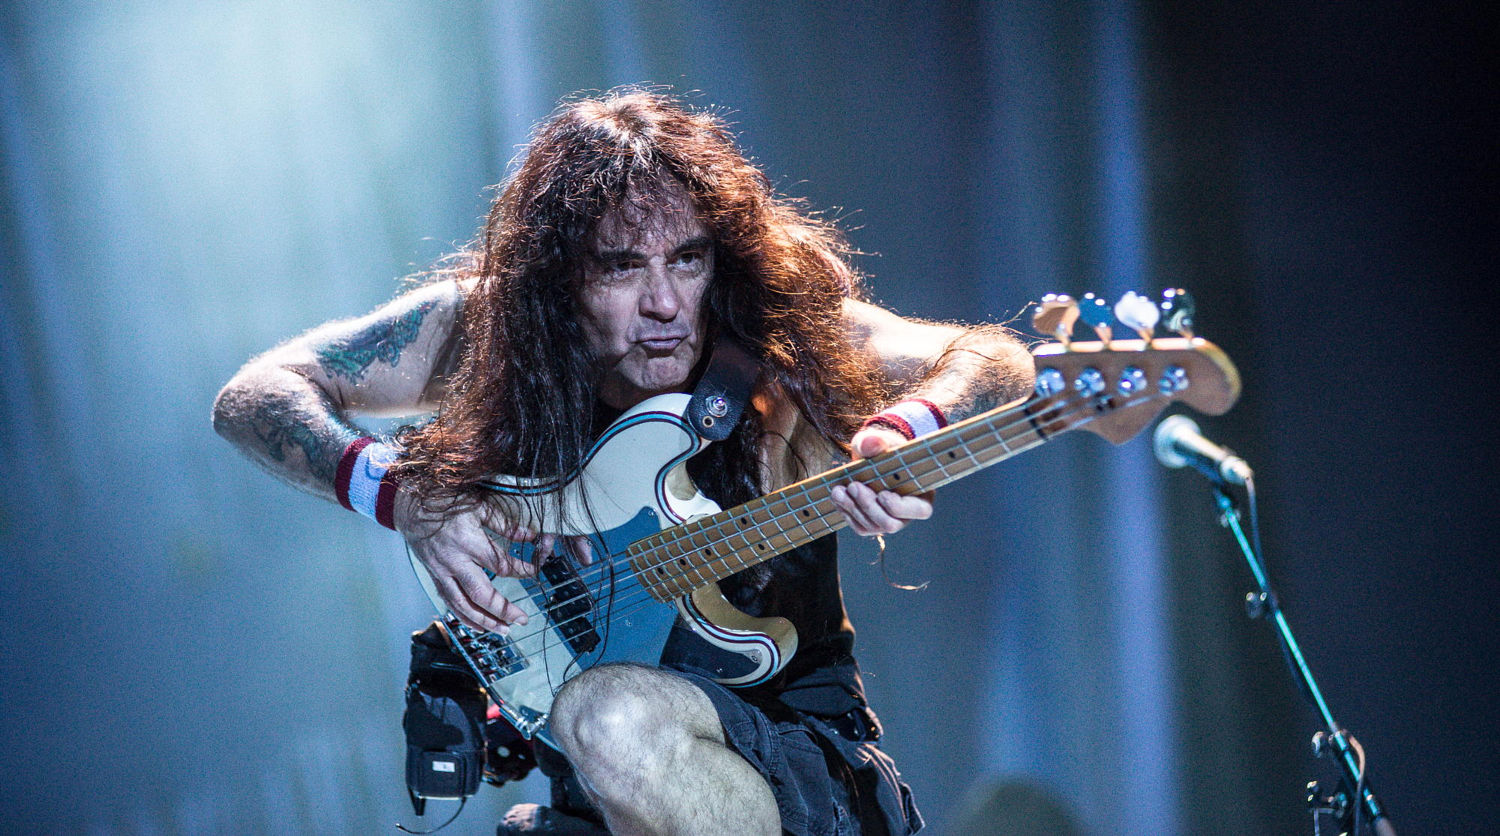 Steve Harris (photo: Guilherme Nozawa)